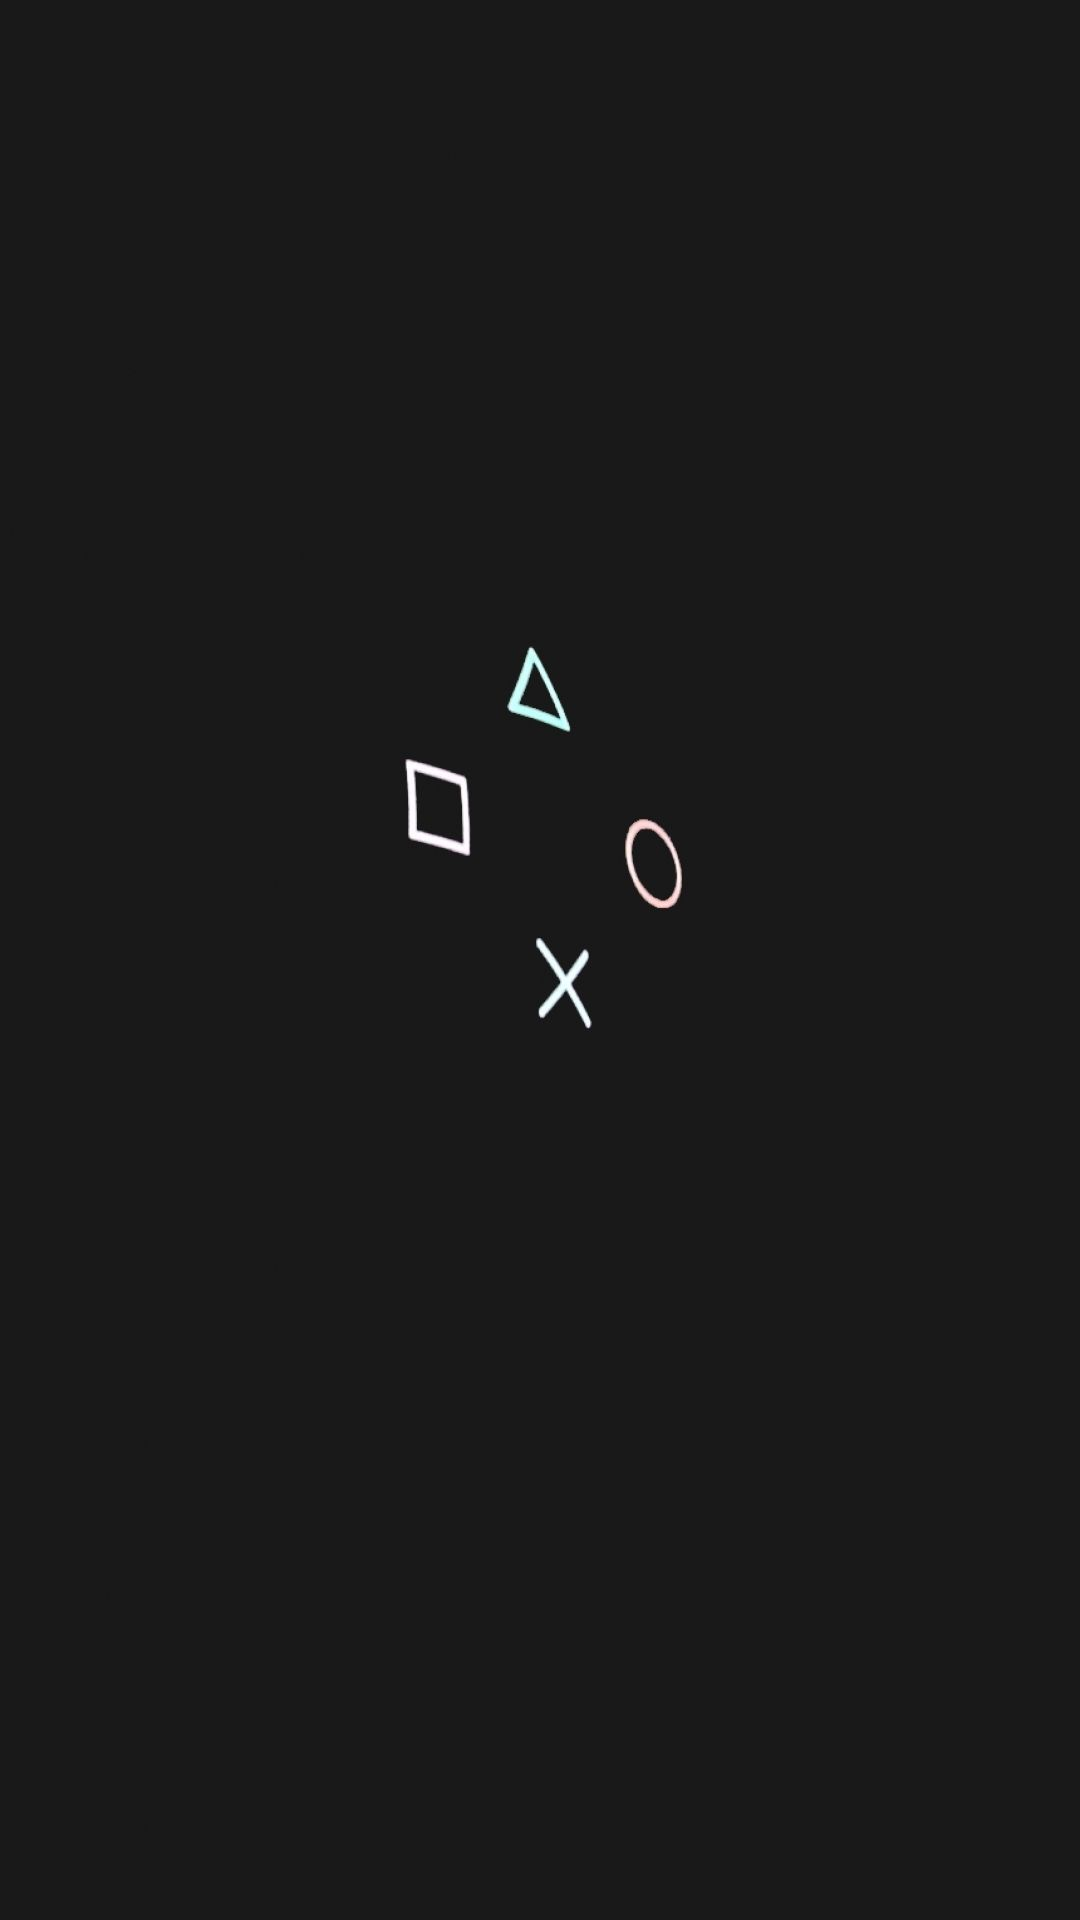 1080x1920 Sony Playstation Wallpapers